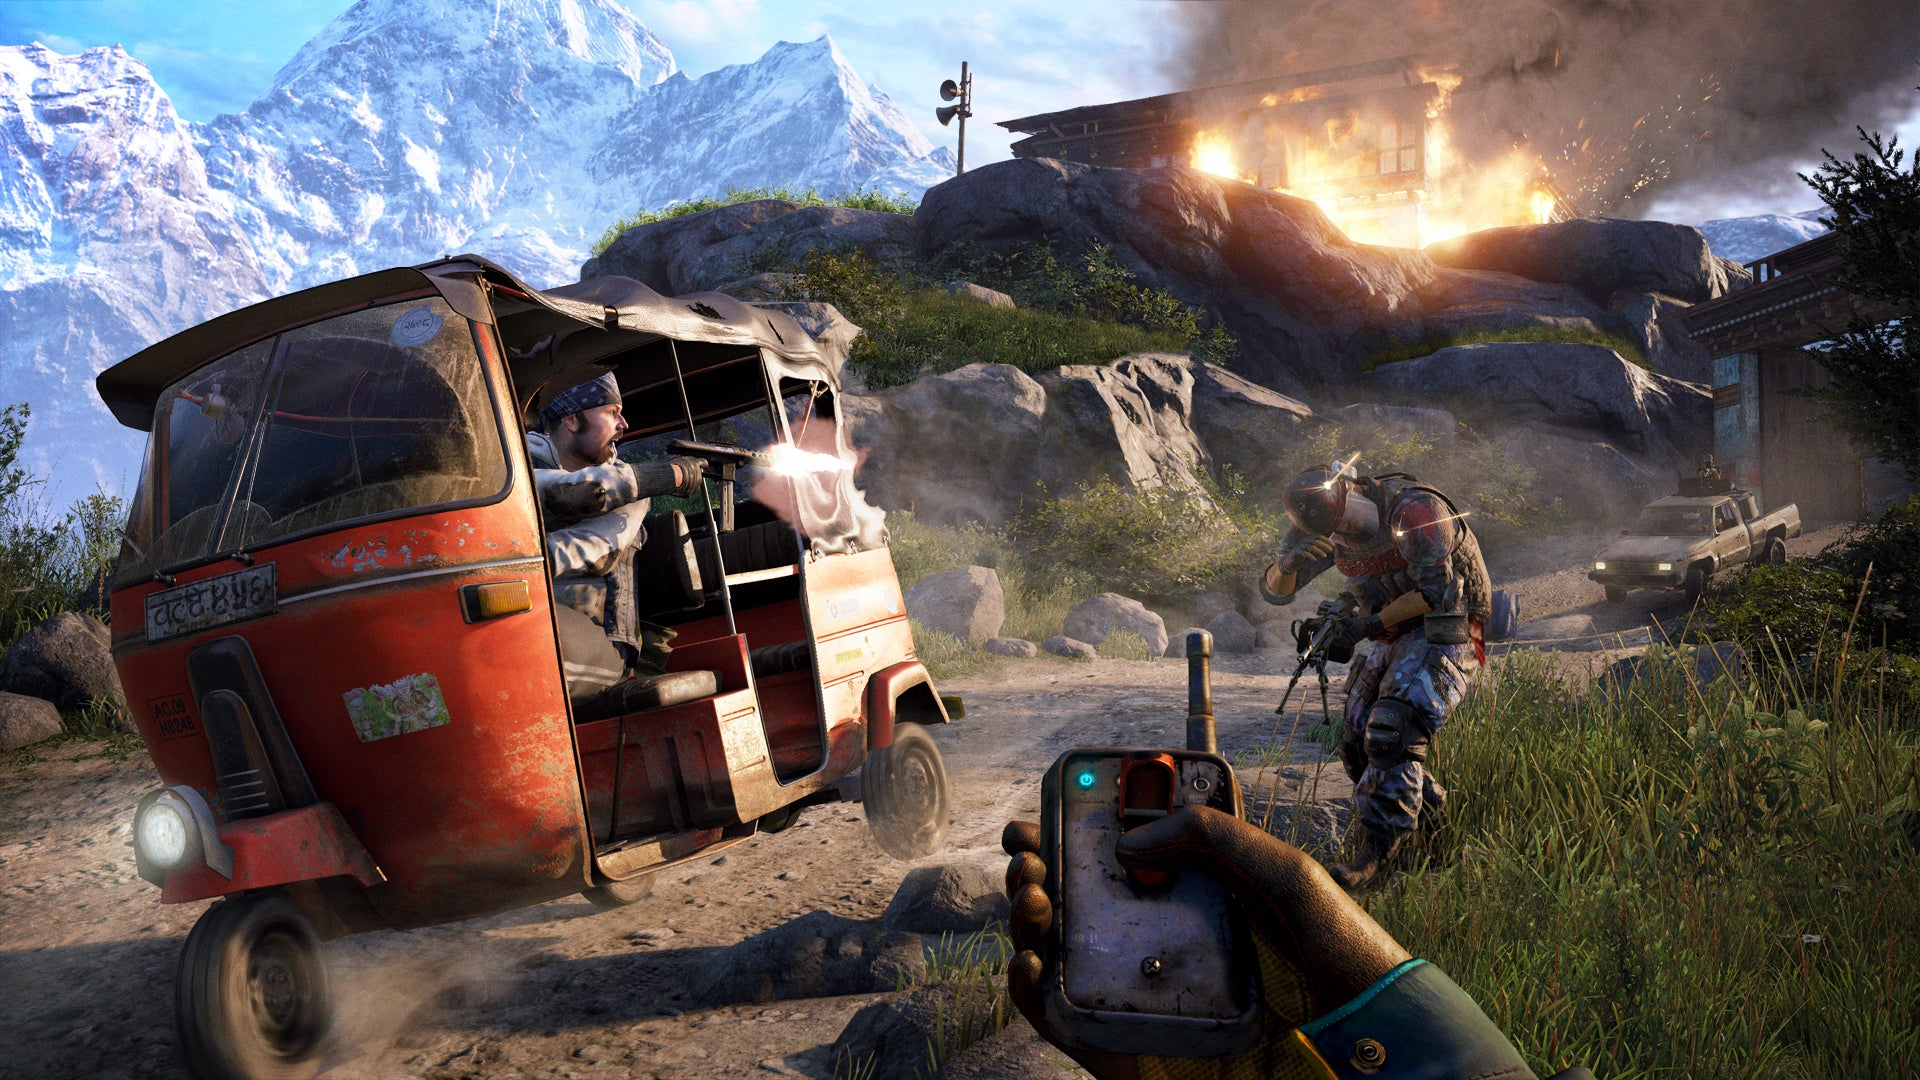 Far Cry 4 Review A True Blockbuster That Offers Chaotic Fun But